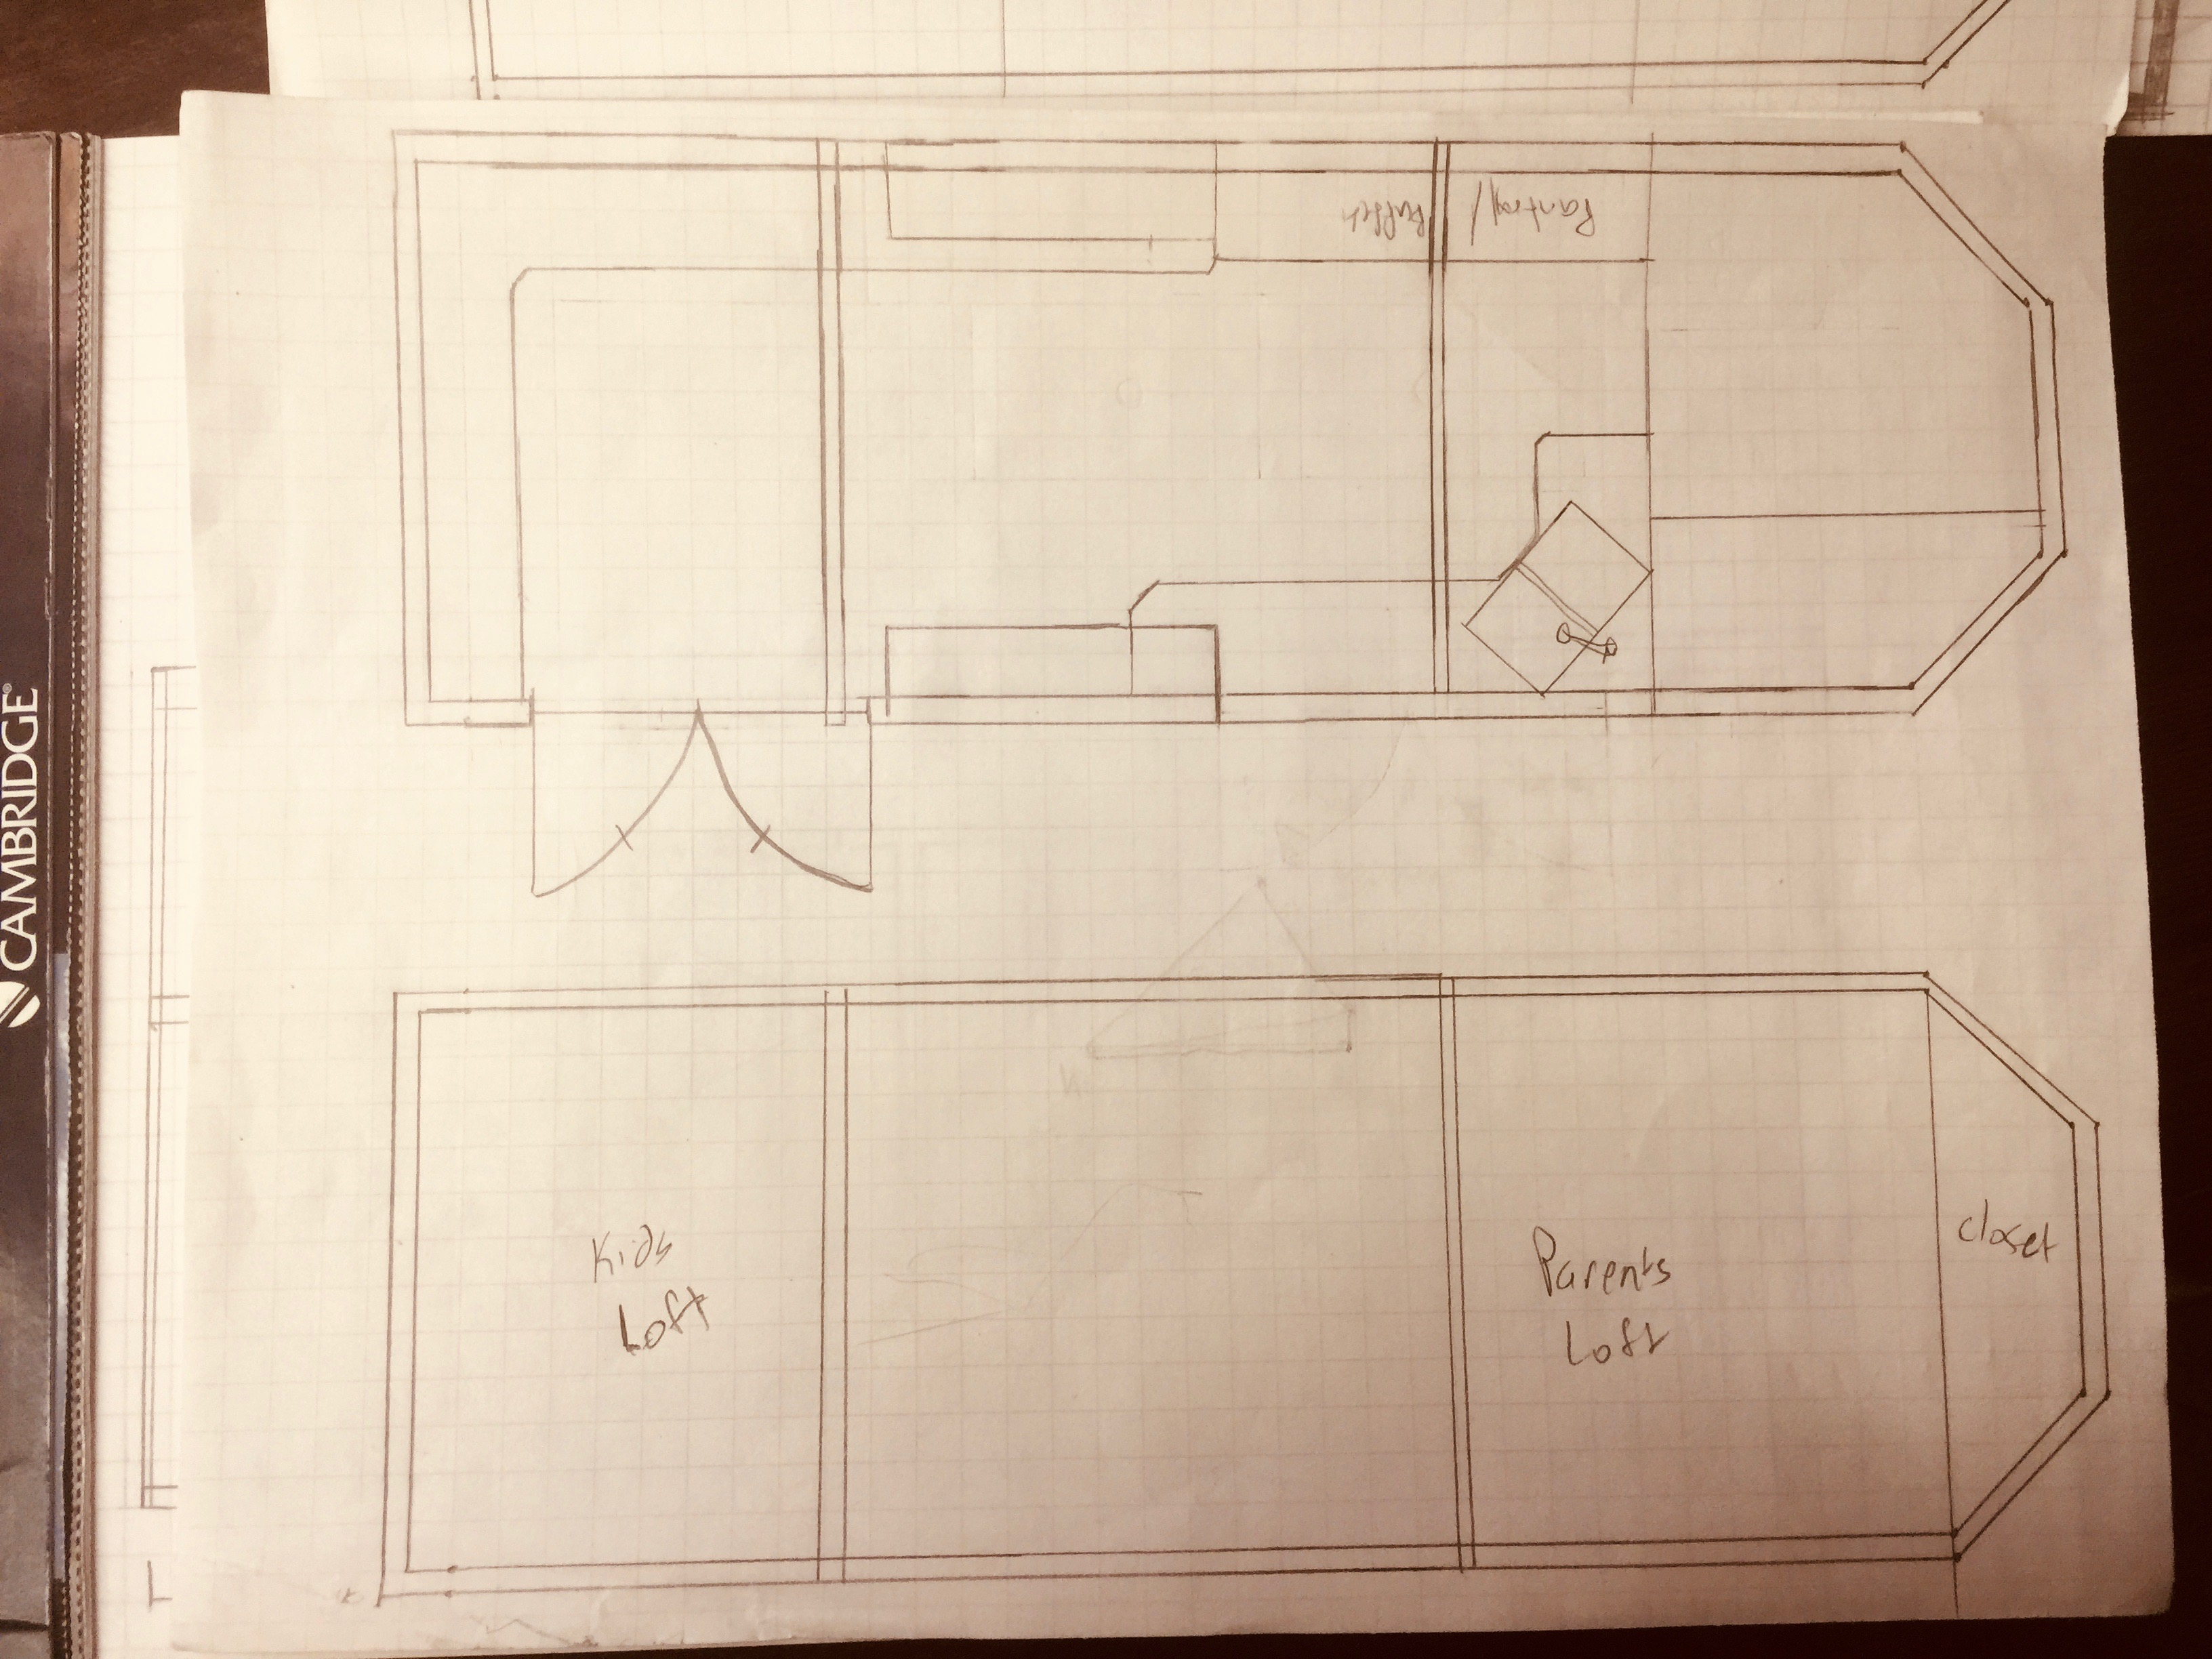 travel trailer floor plans, cottage floor plans, small house plans, studio floor plans, tiny houses one story, shipping container floor plans, cabin house plans, architecture floor plans, great tiny house plans, tiny houses on wheels, shed house plans, tiny house plans 20x20, home floor plans, on tiny house floor plans 8 by